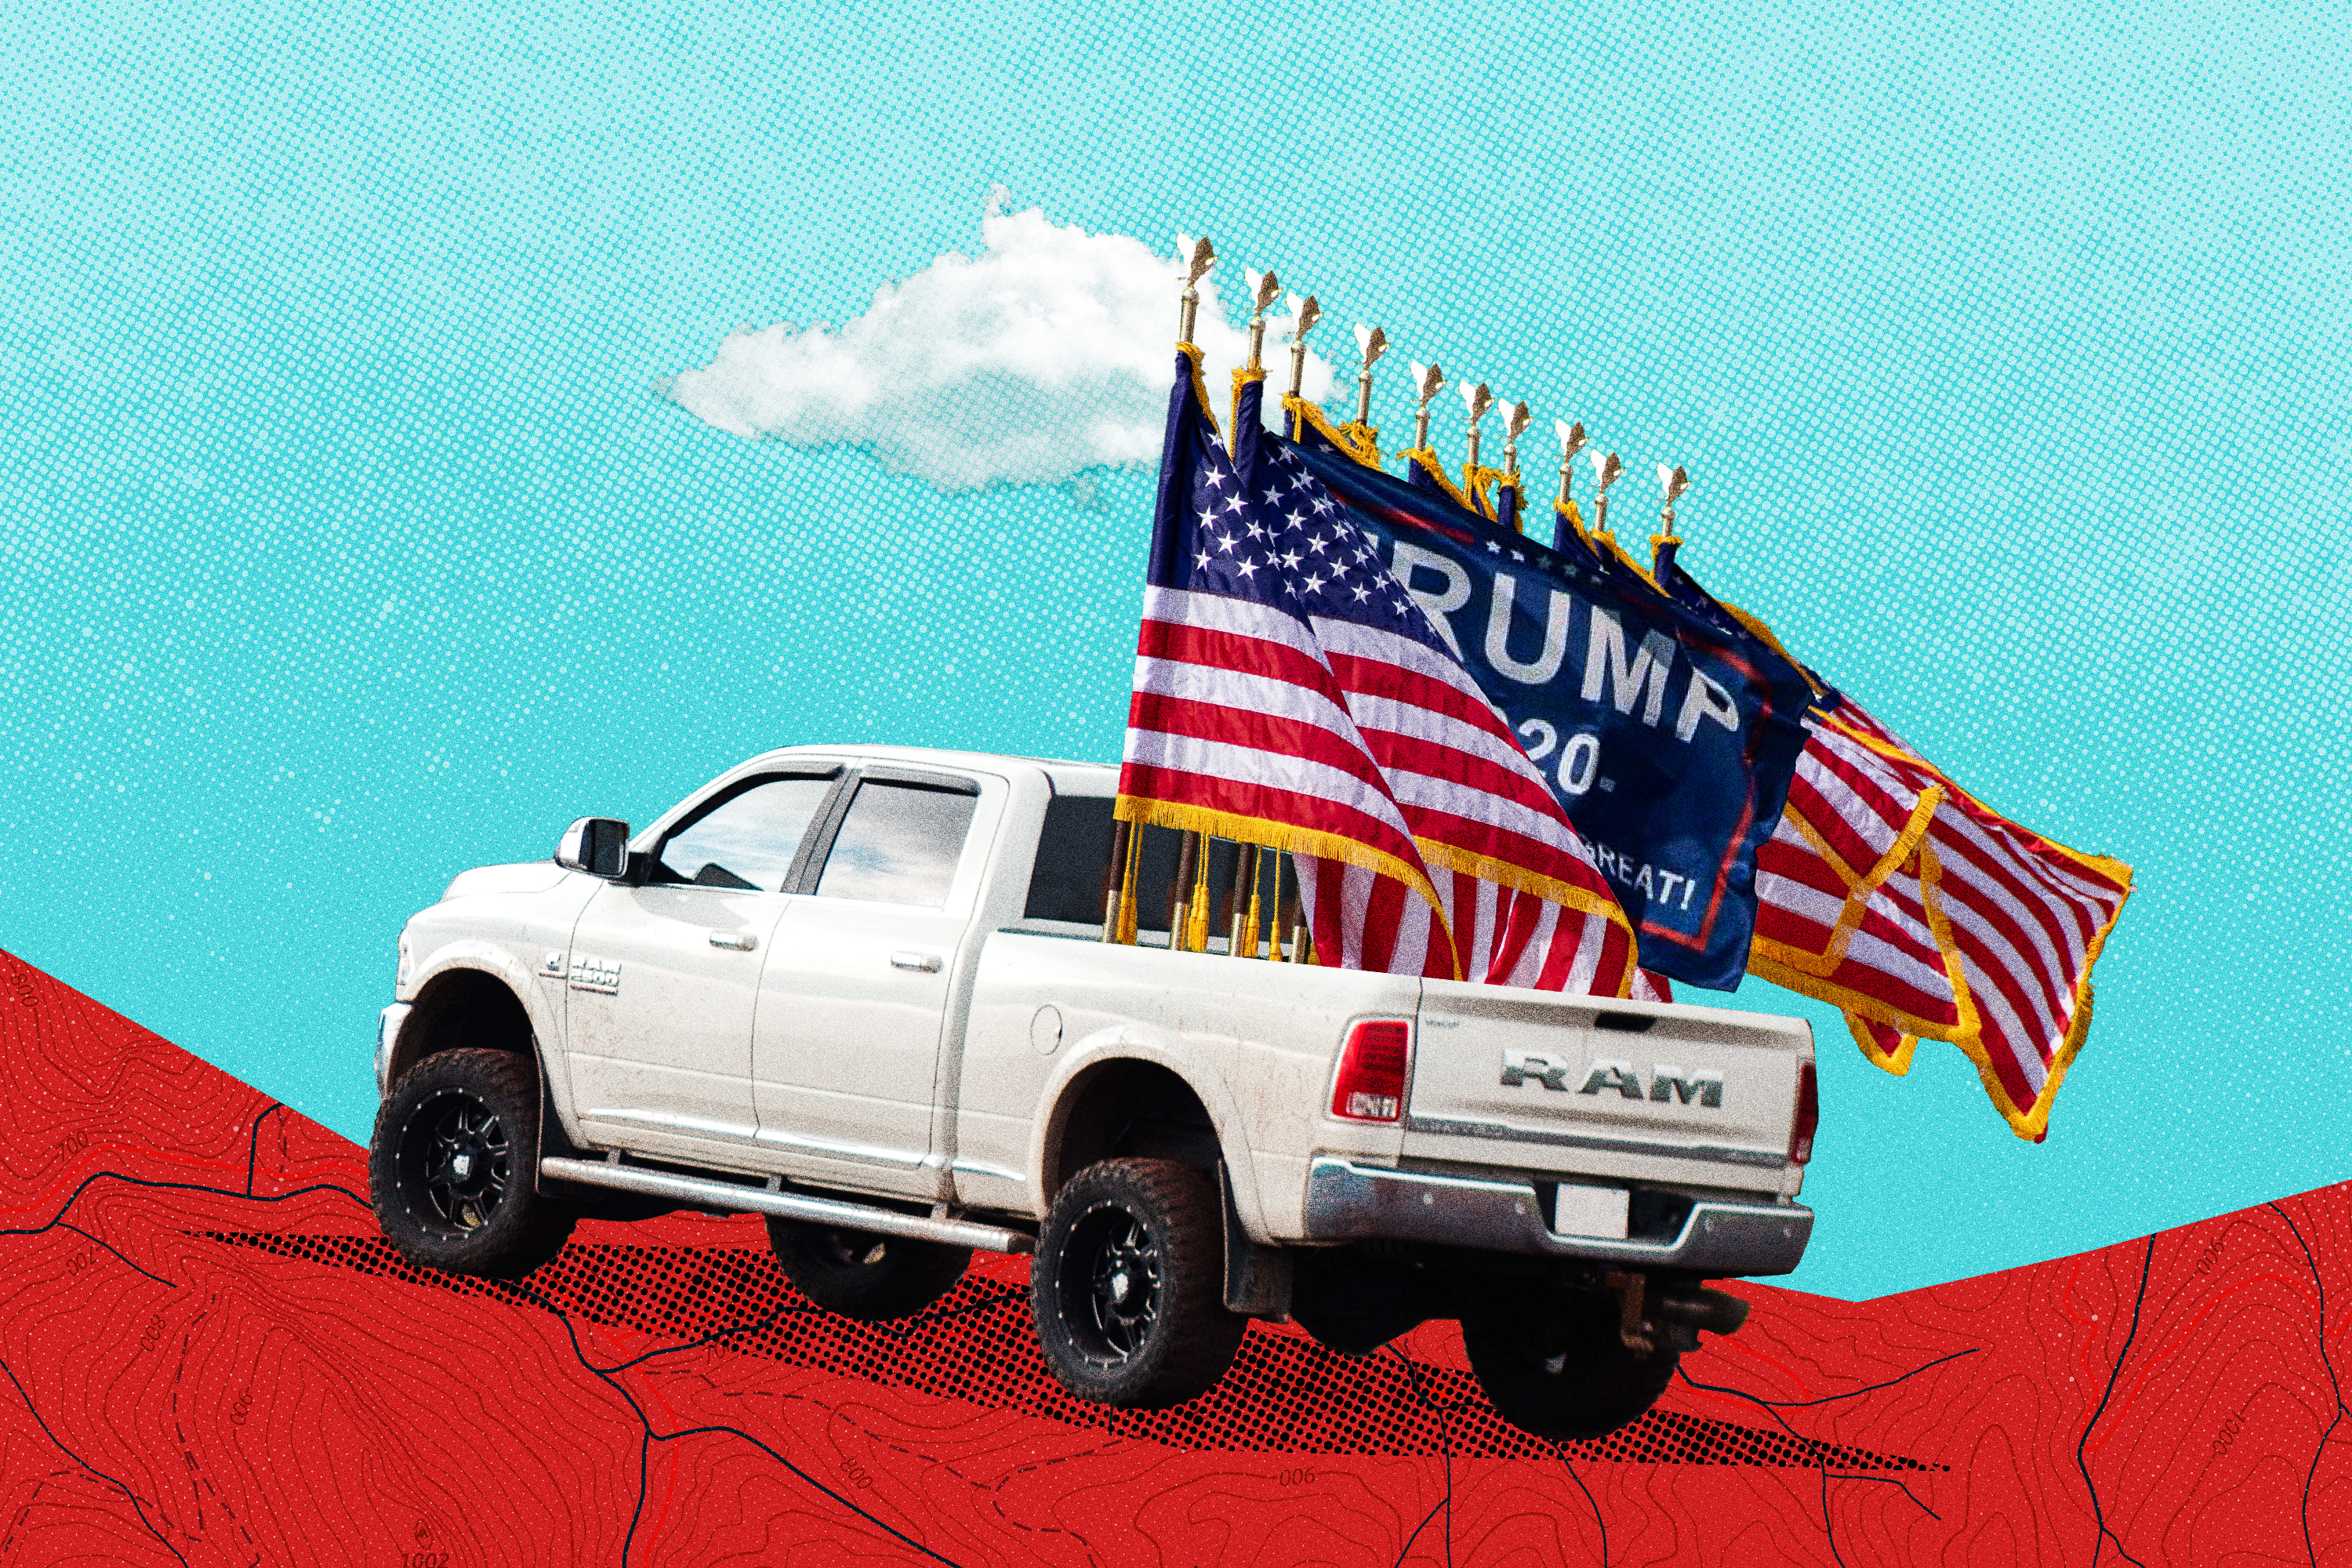 A white truck has American flags and Trump 2020 flags in the tailgate.